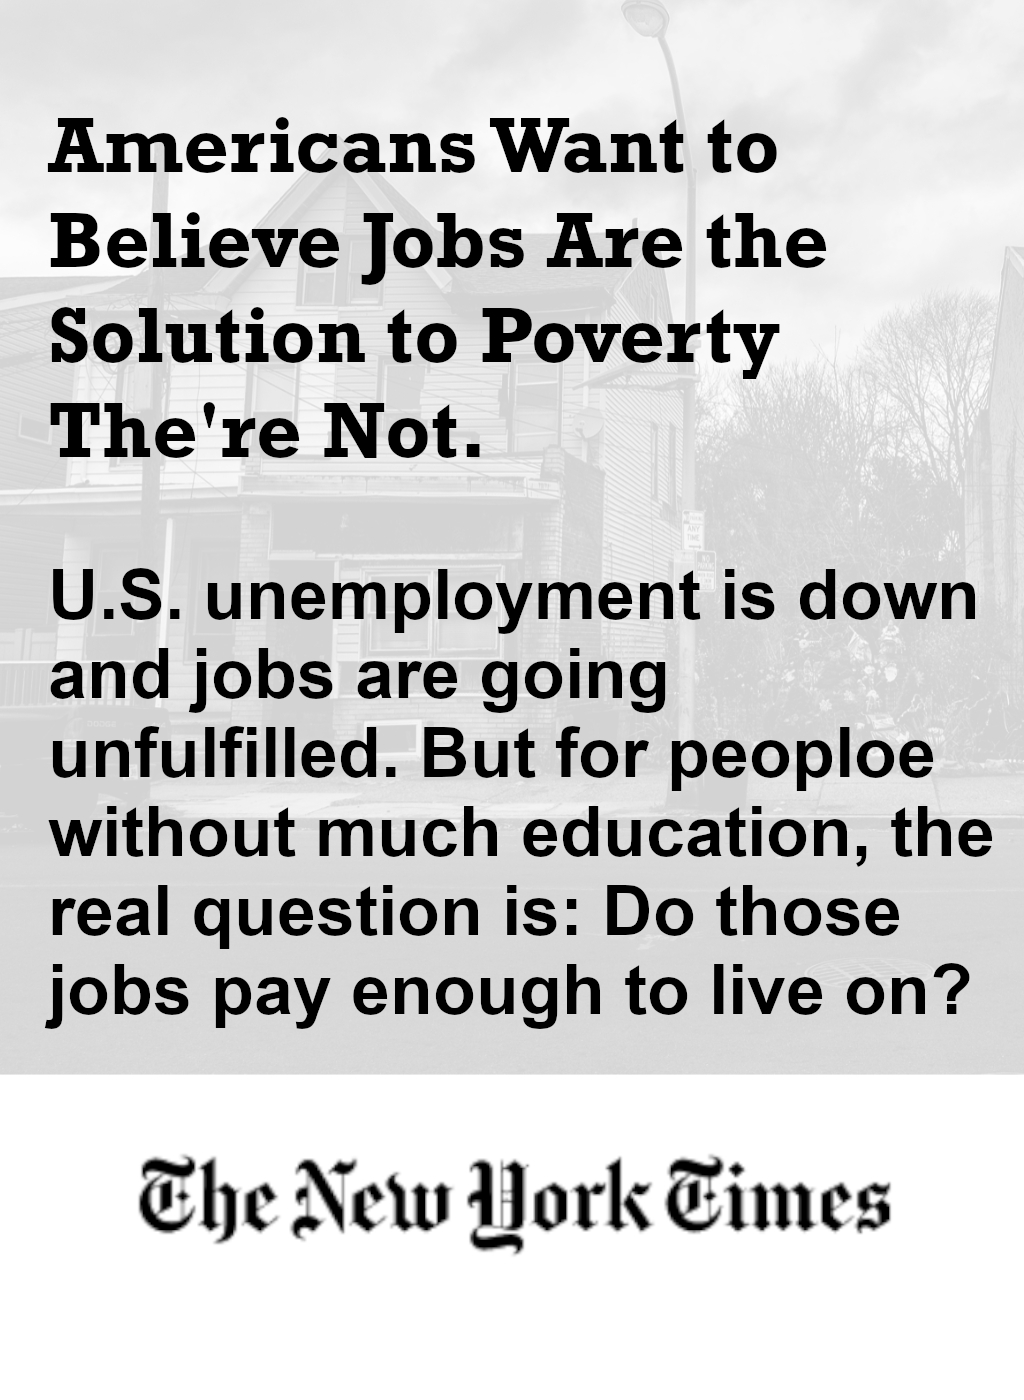 Jobs Are Not the Solution to Poverty